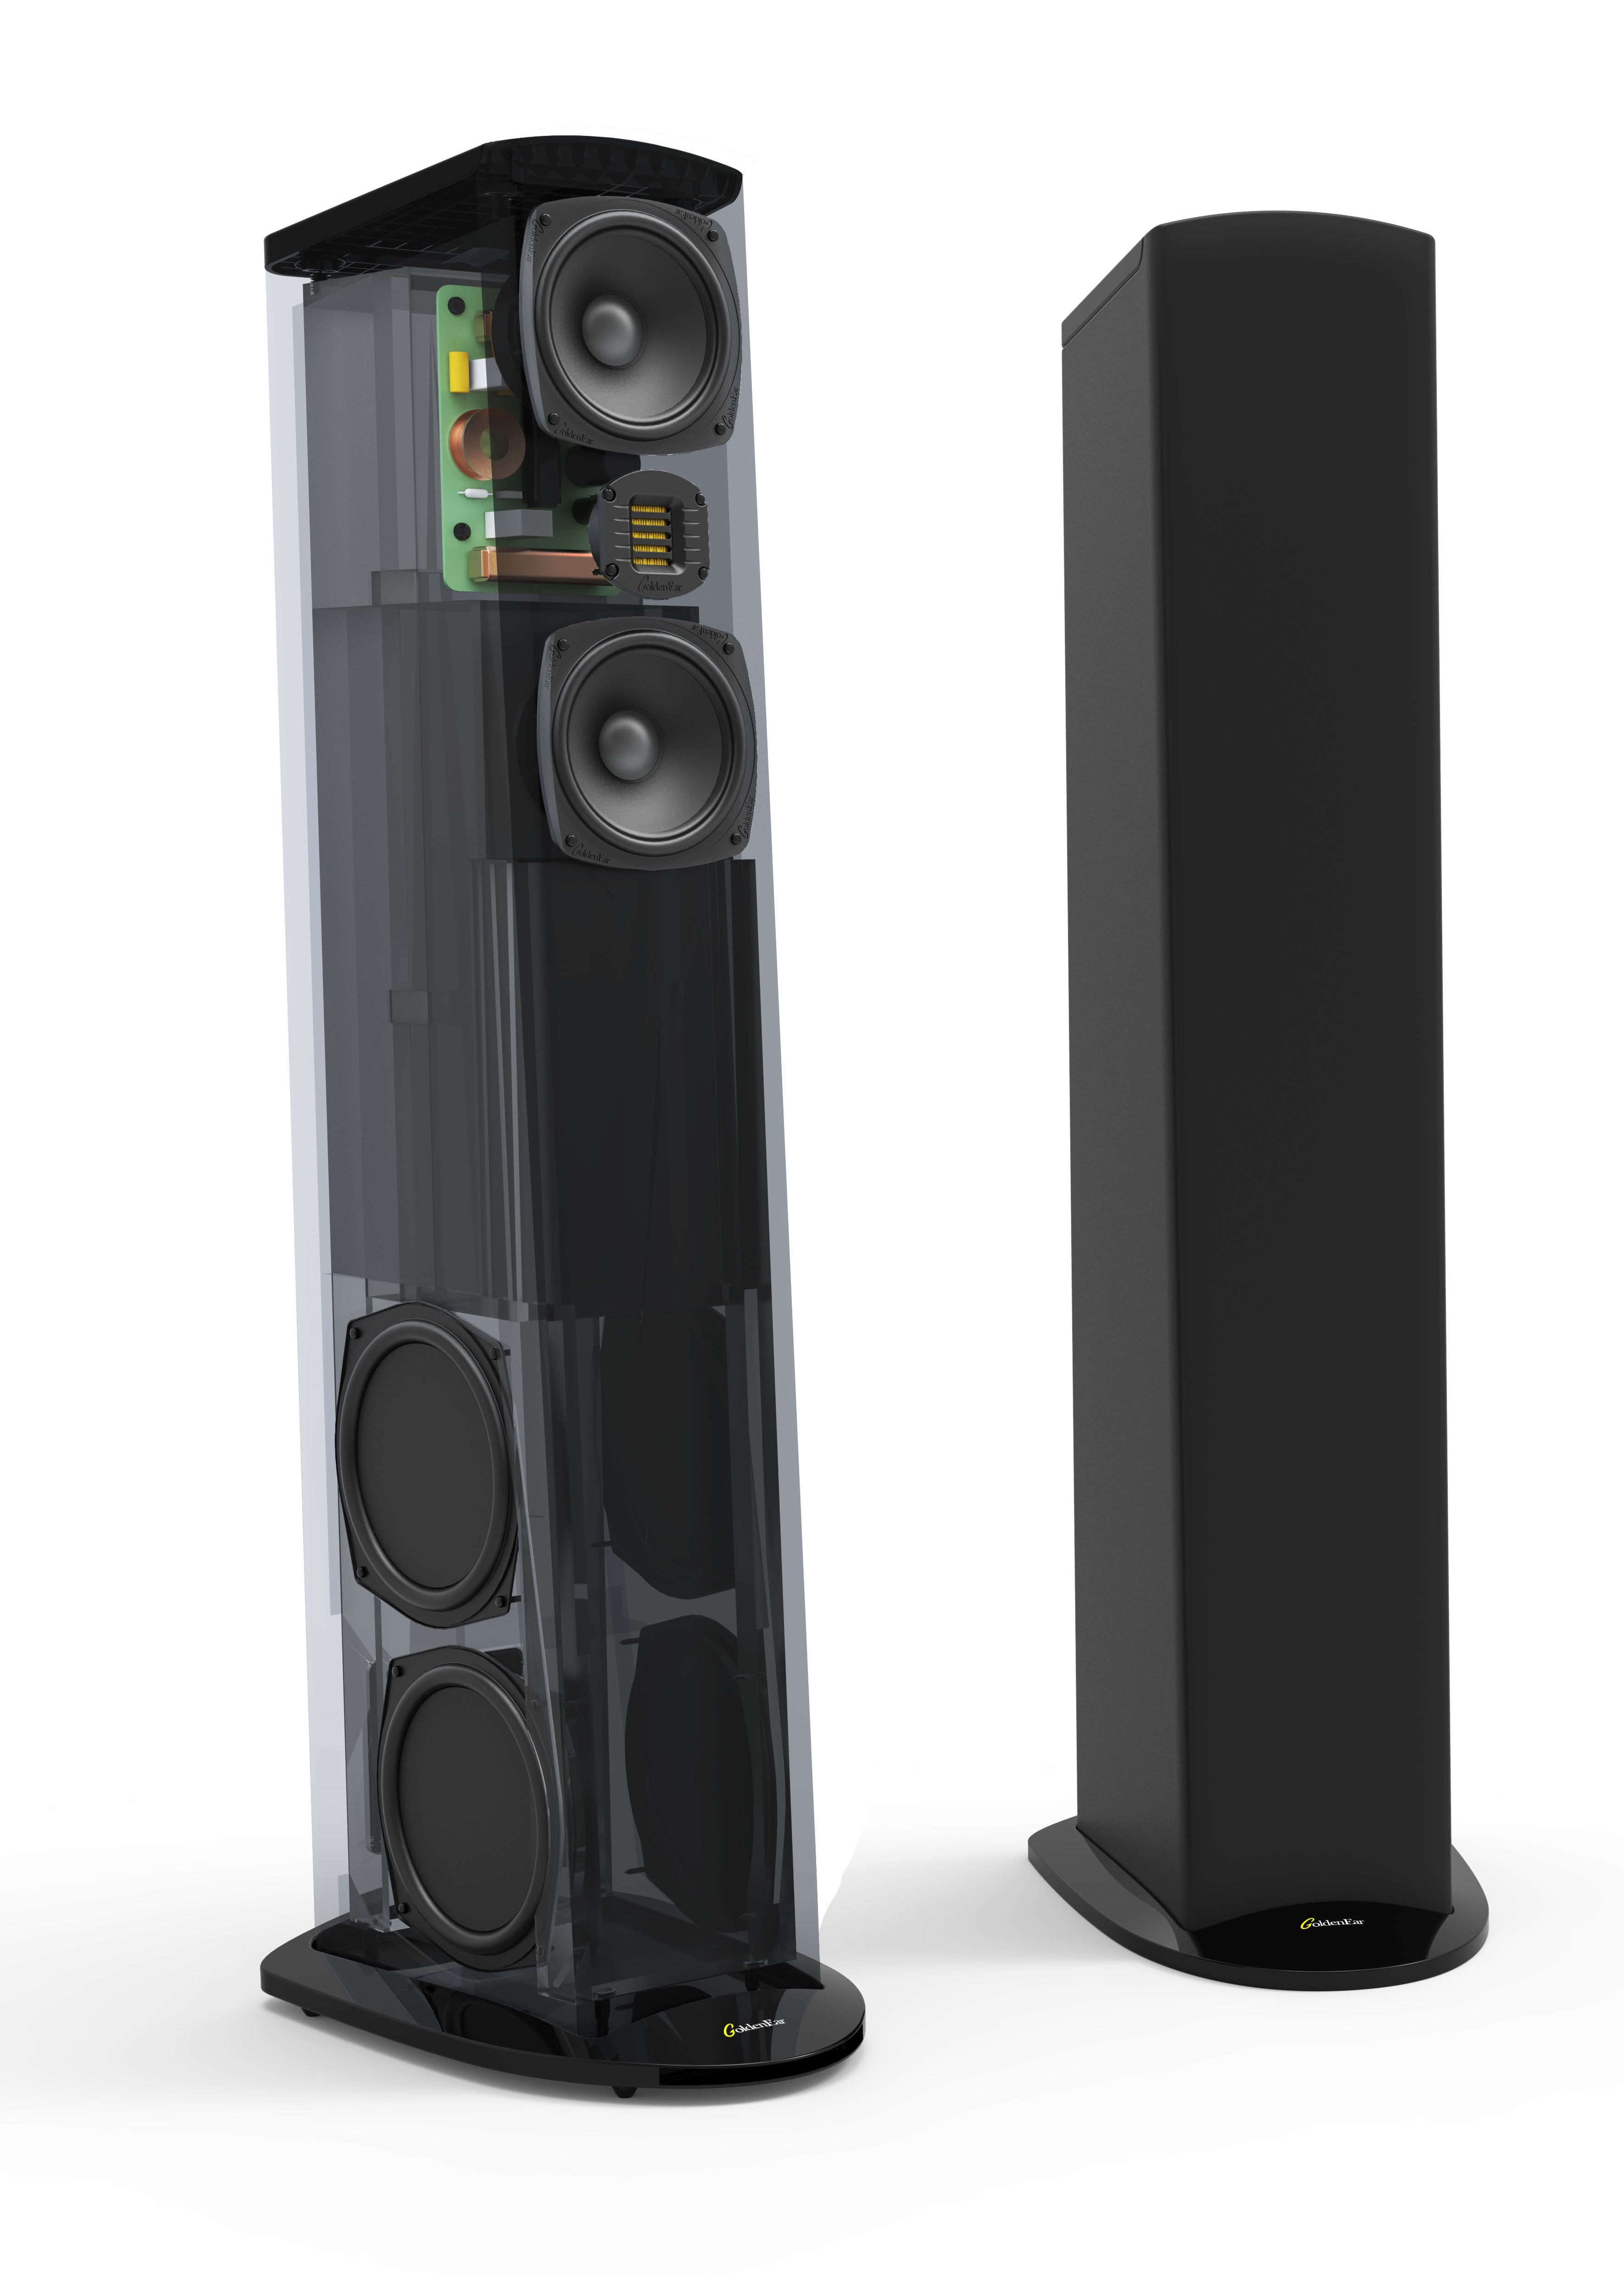 High Performance Audio The Little Guys Subwoofers Will Consistent Power To Both Maximizing Your Goldenear Triton